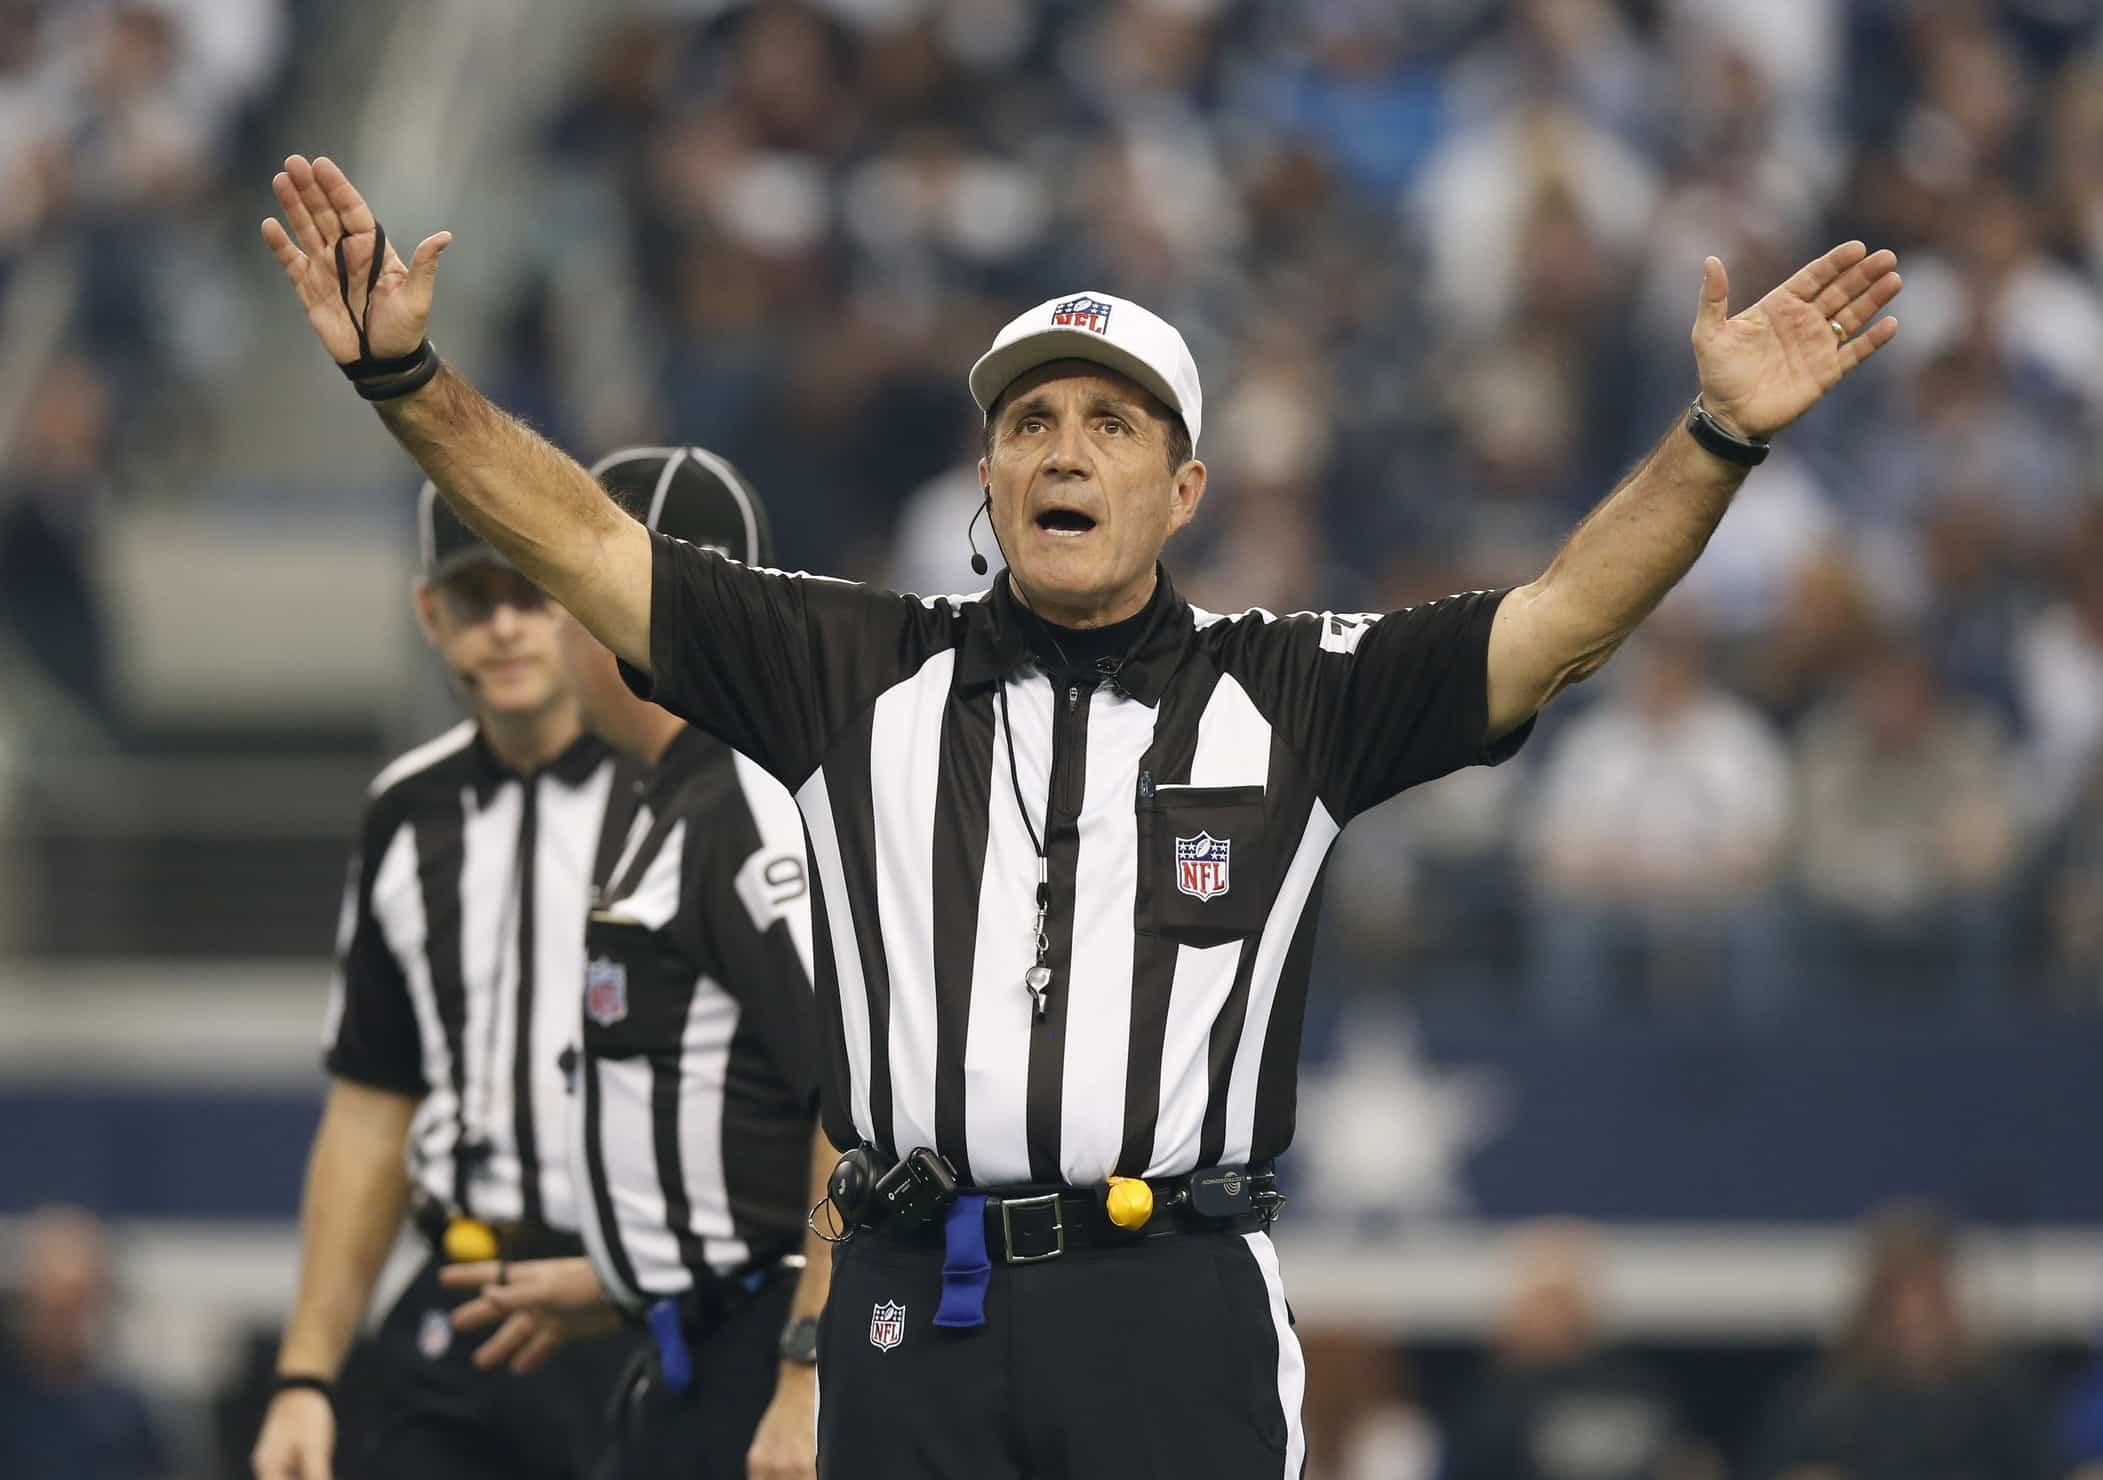 Nfl Referee Pete Morelli Gets New Crew For 2016 Season